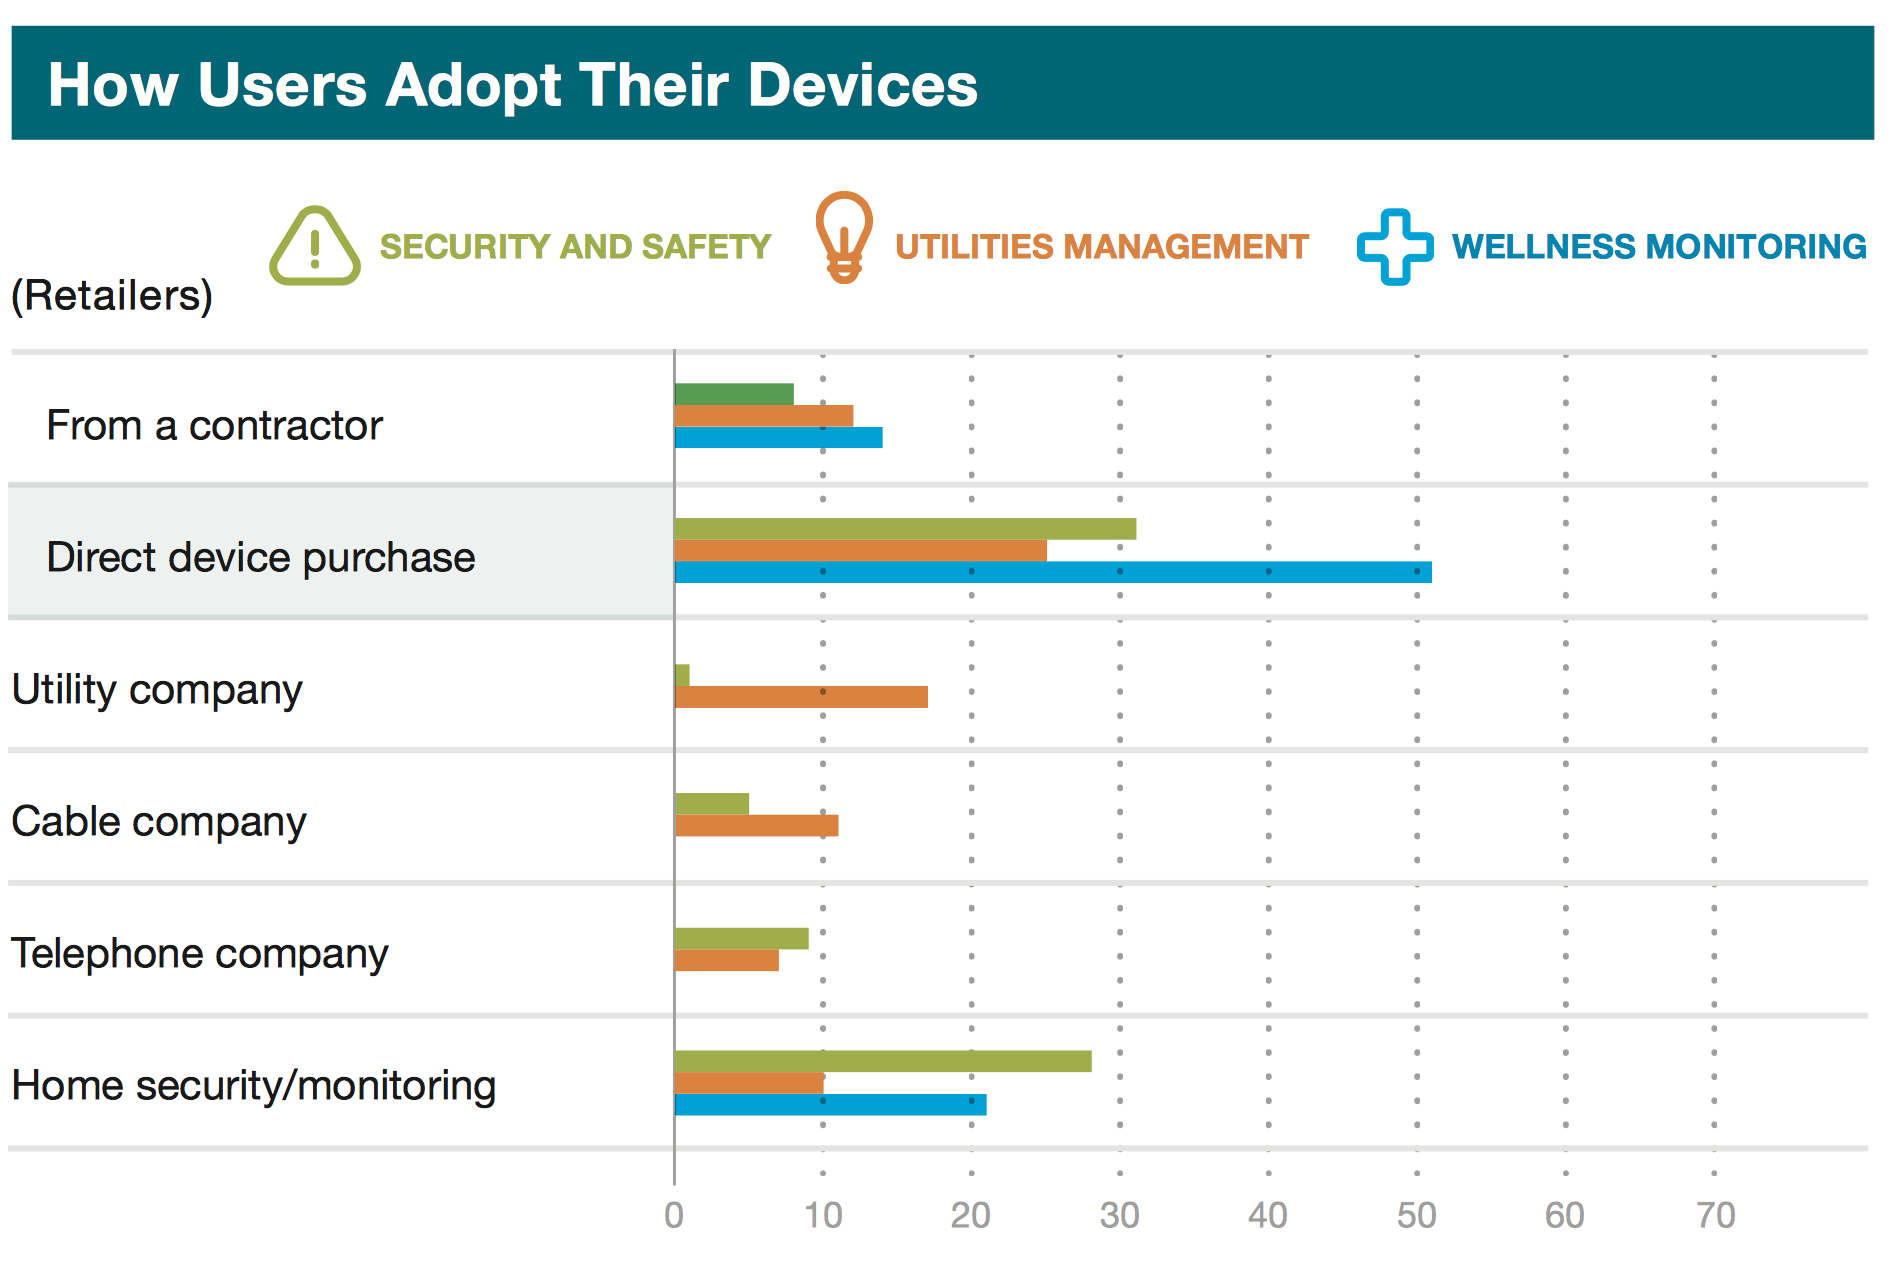 Figure 1: How users in the US adopt their smart home devices ( McKinsey, 2016 )